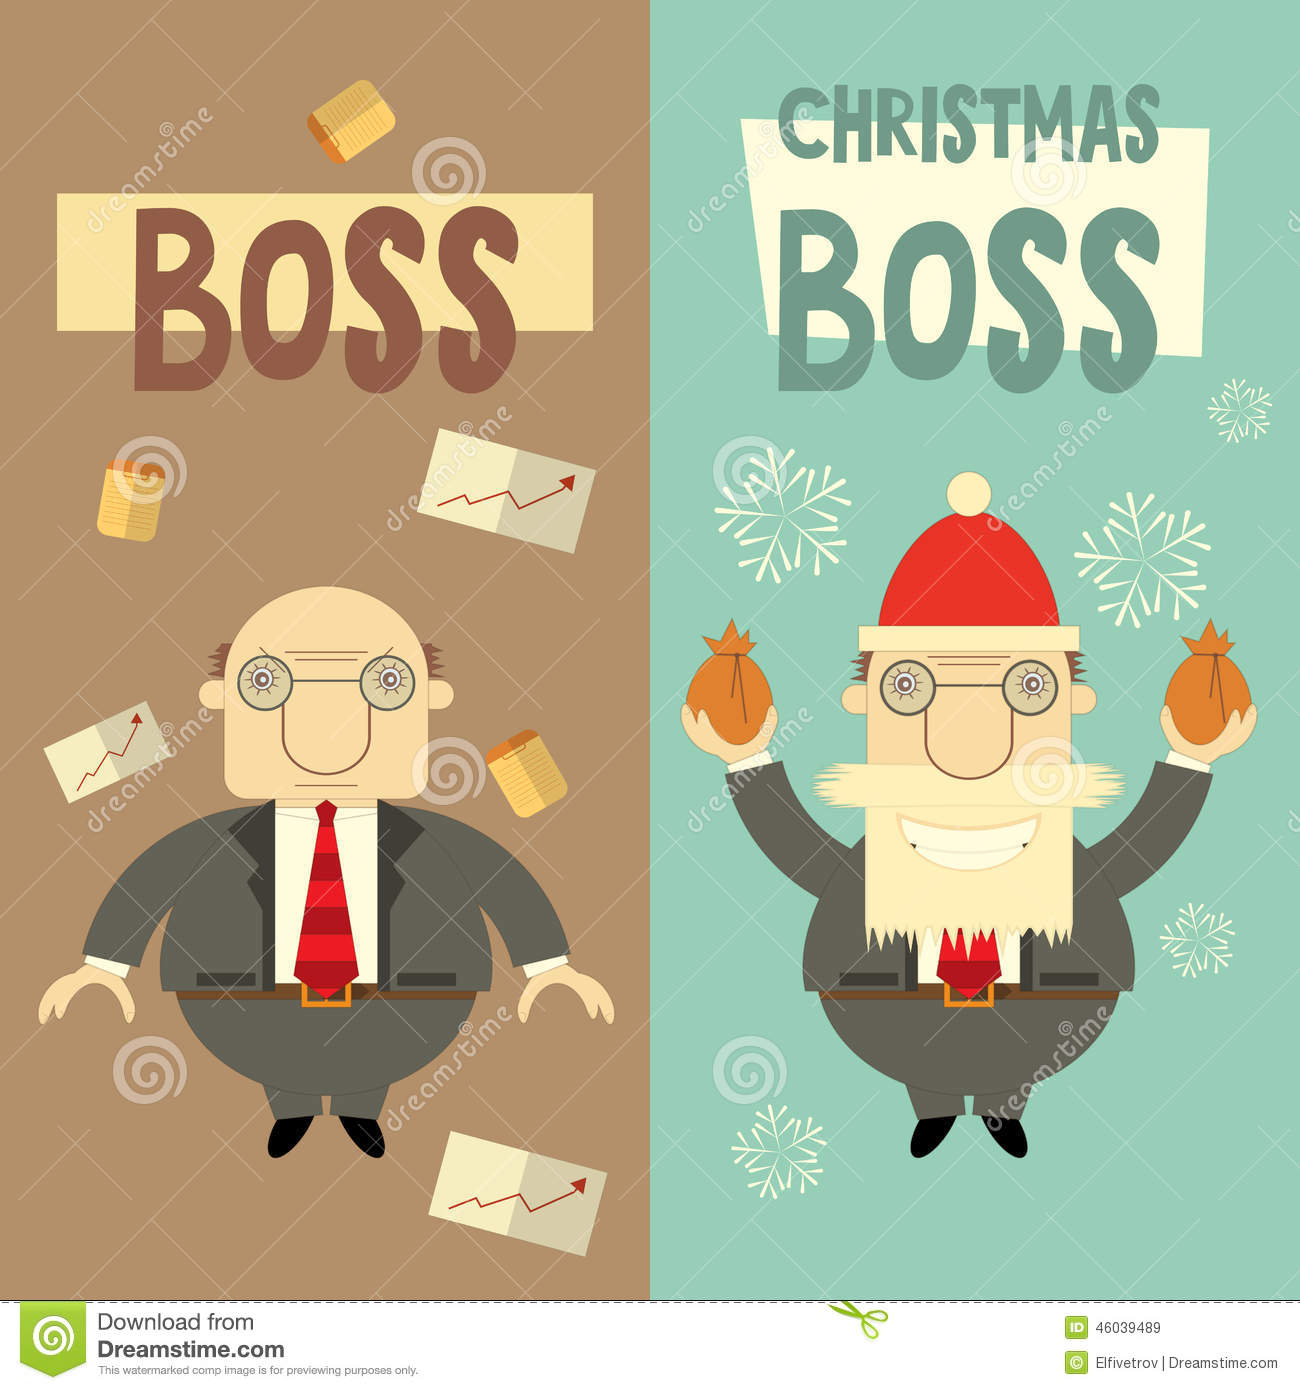 Merry christmas greeting card stock vector illustration of merry christmas greeting card with cartoon santa claus boss and angry boss vector illustration m4hsunfo